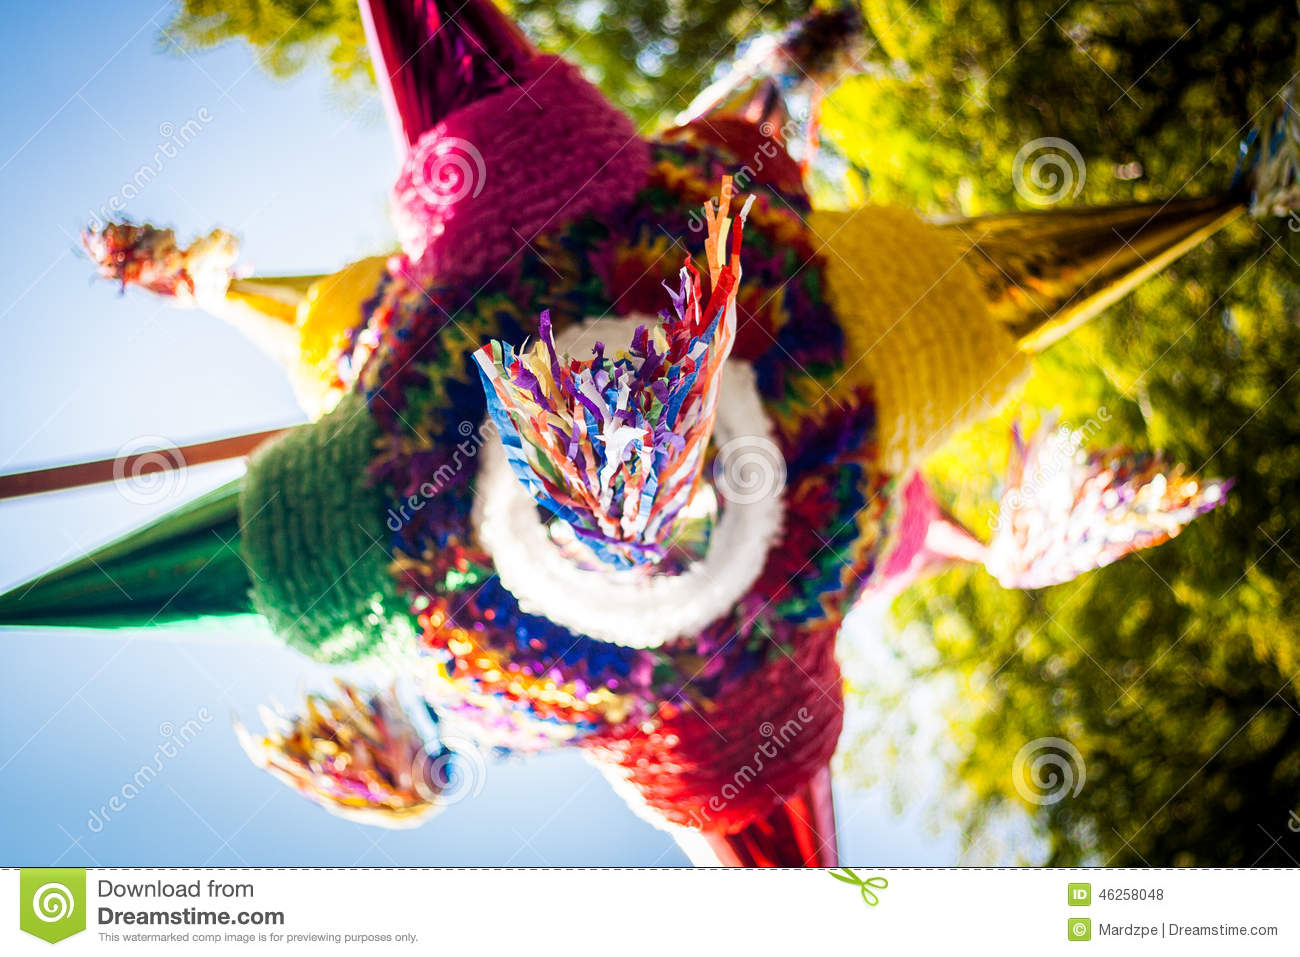 pinata stock photos images u0026 pictures 378 images